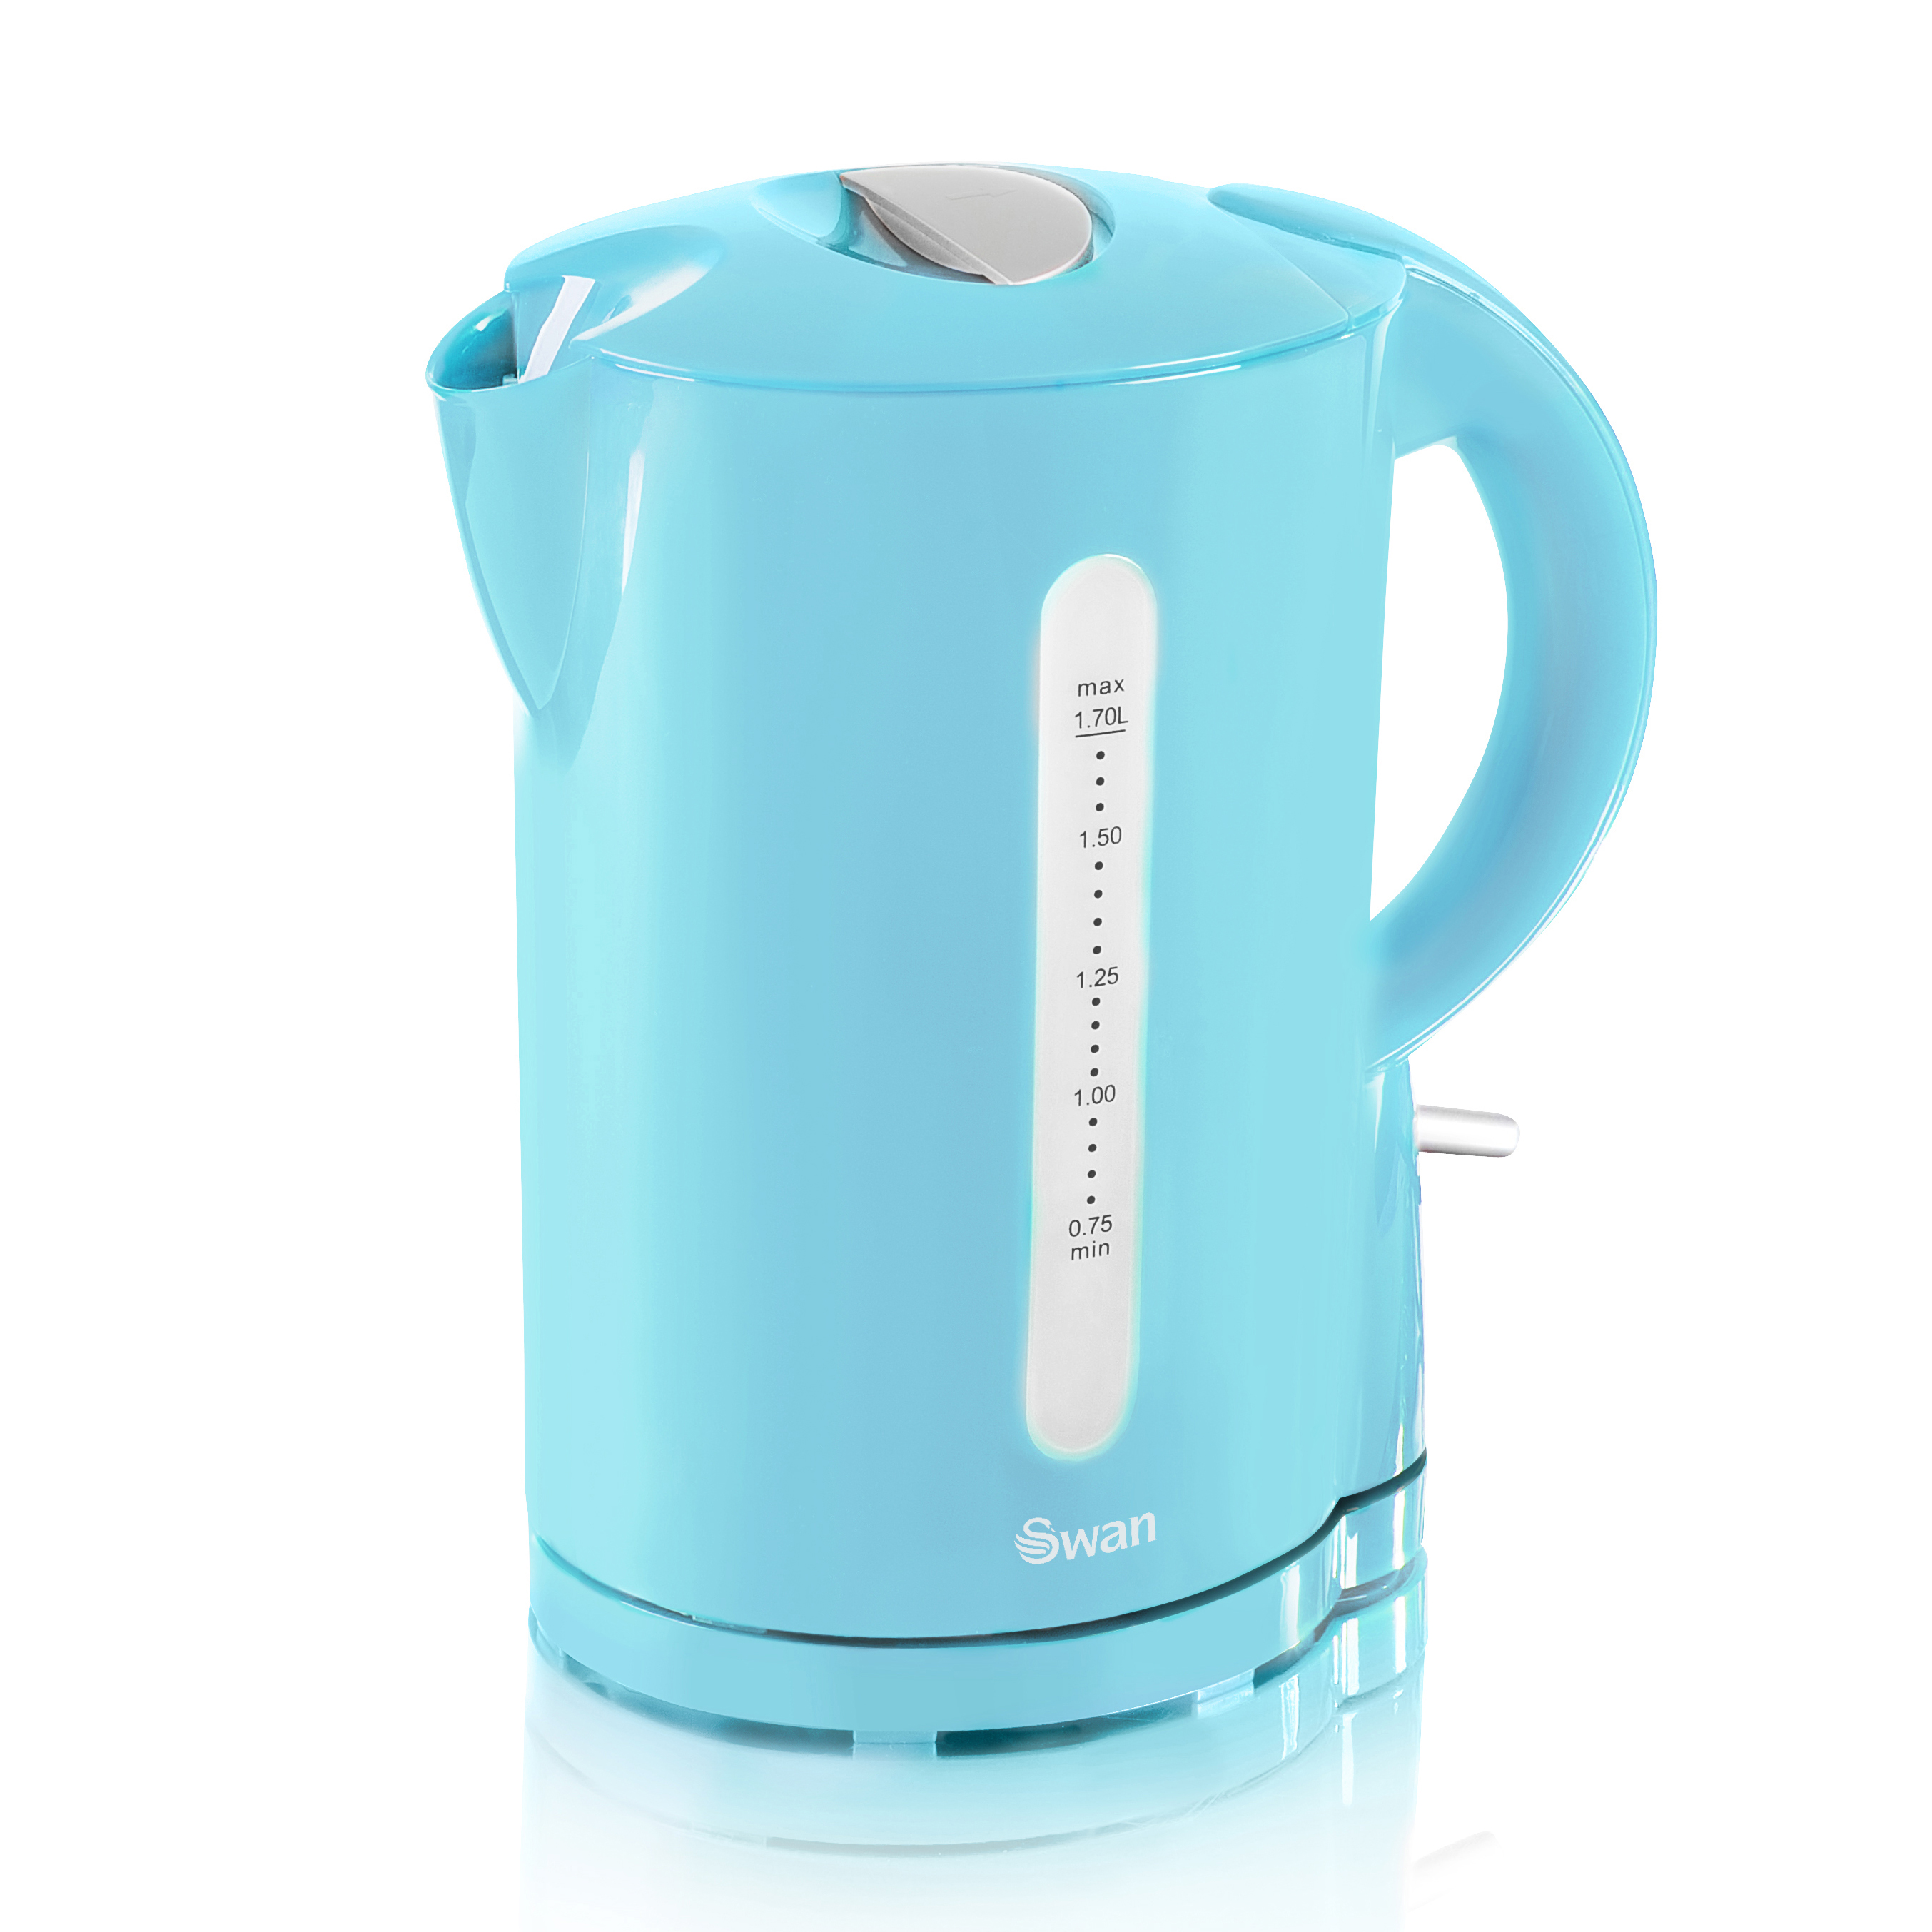 Swan 1.7 Litre Jug Kettle No Colour